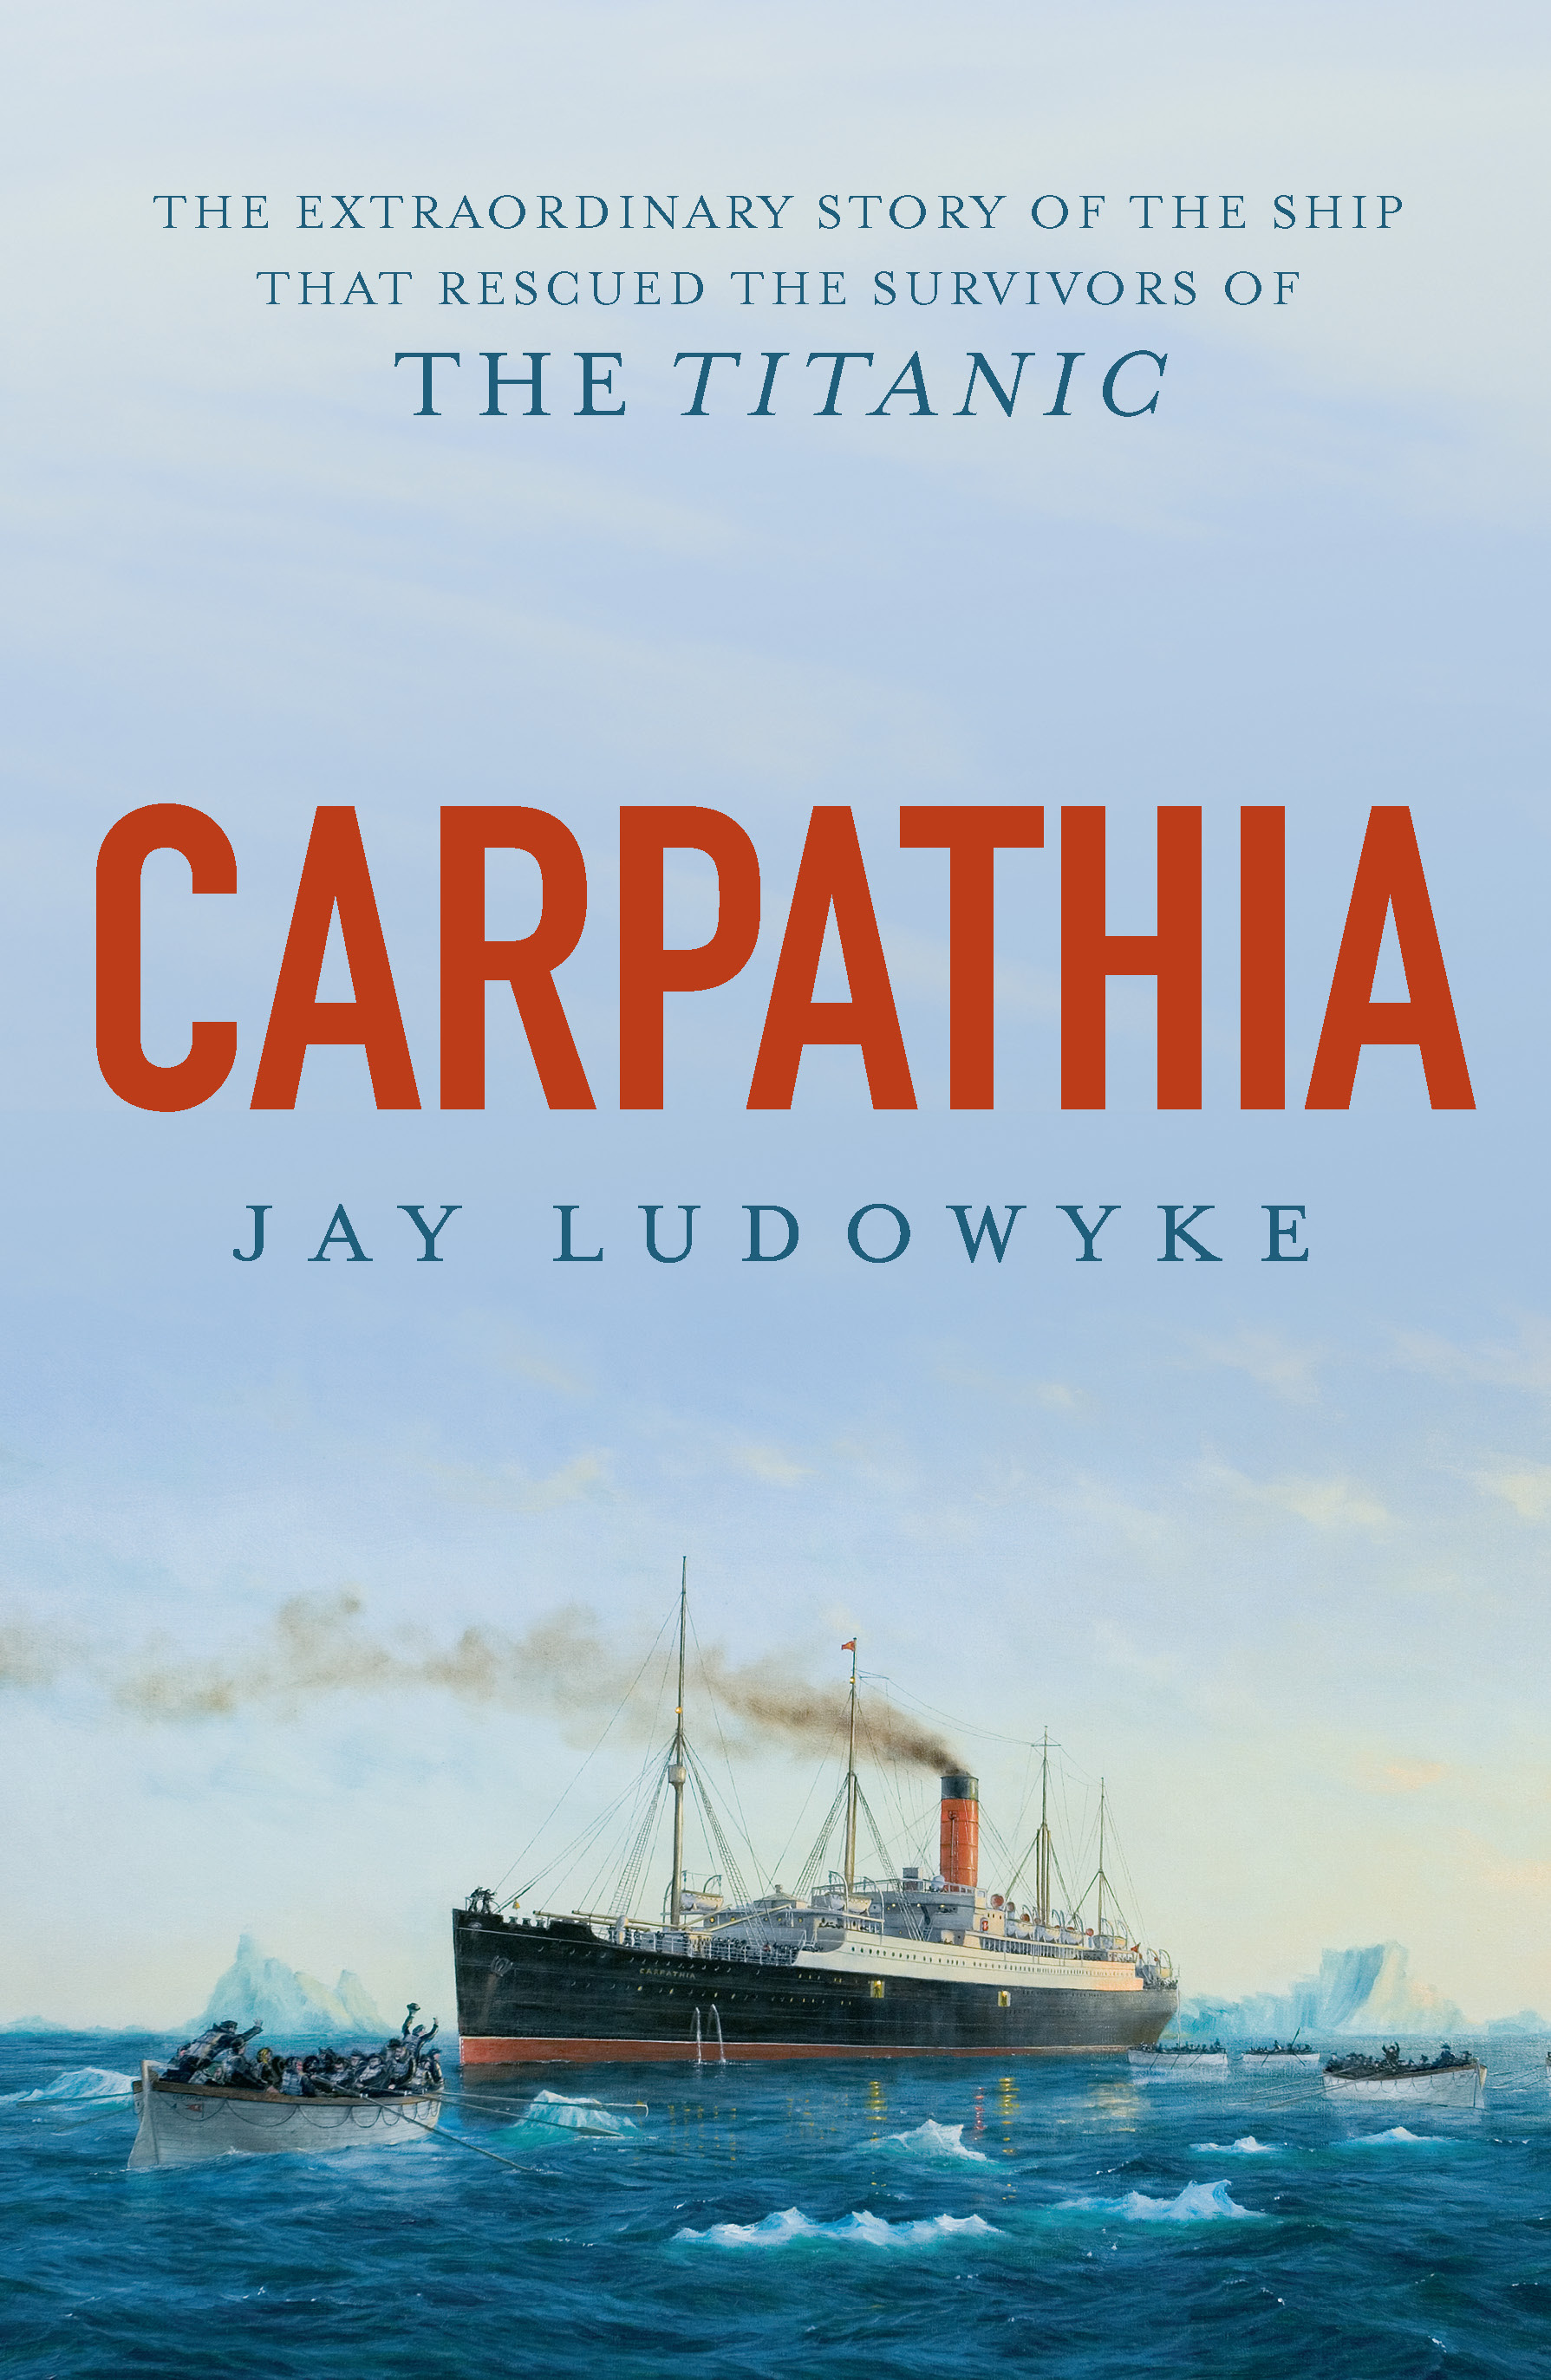 CarpathiaThe Extraordinary Story of the Ship That Rescue...